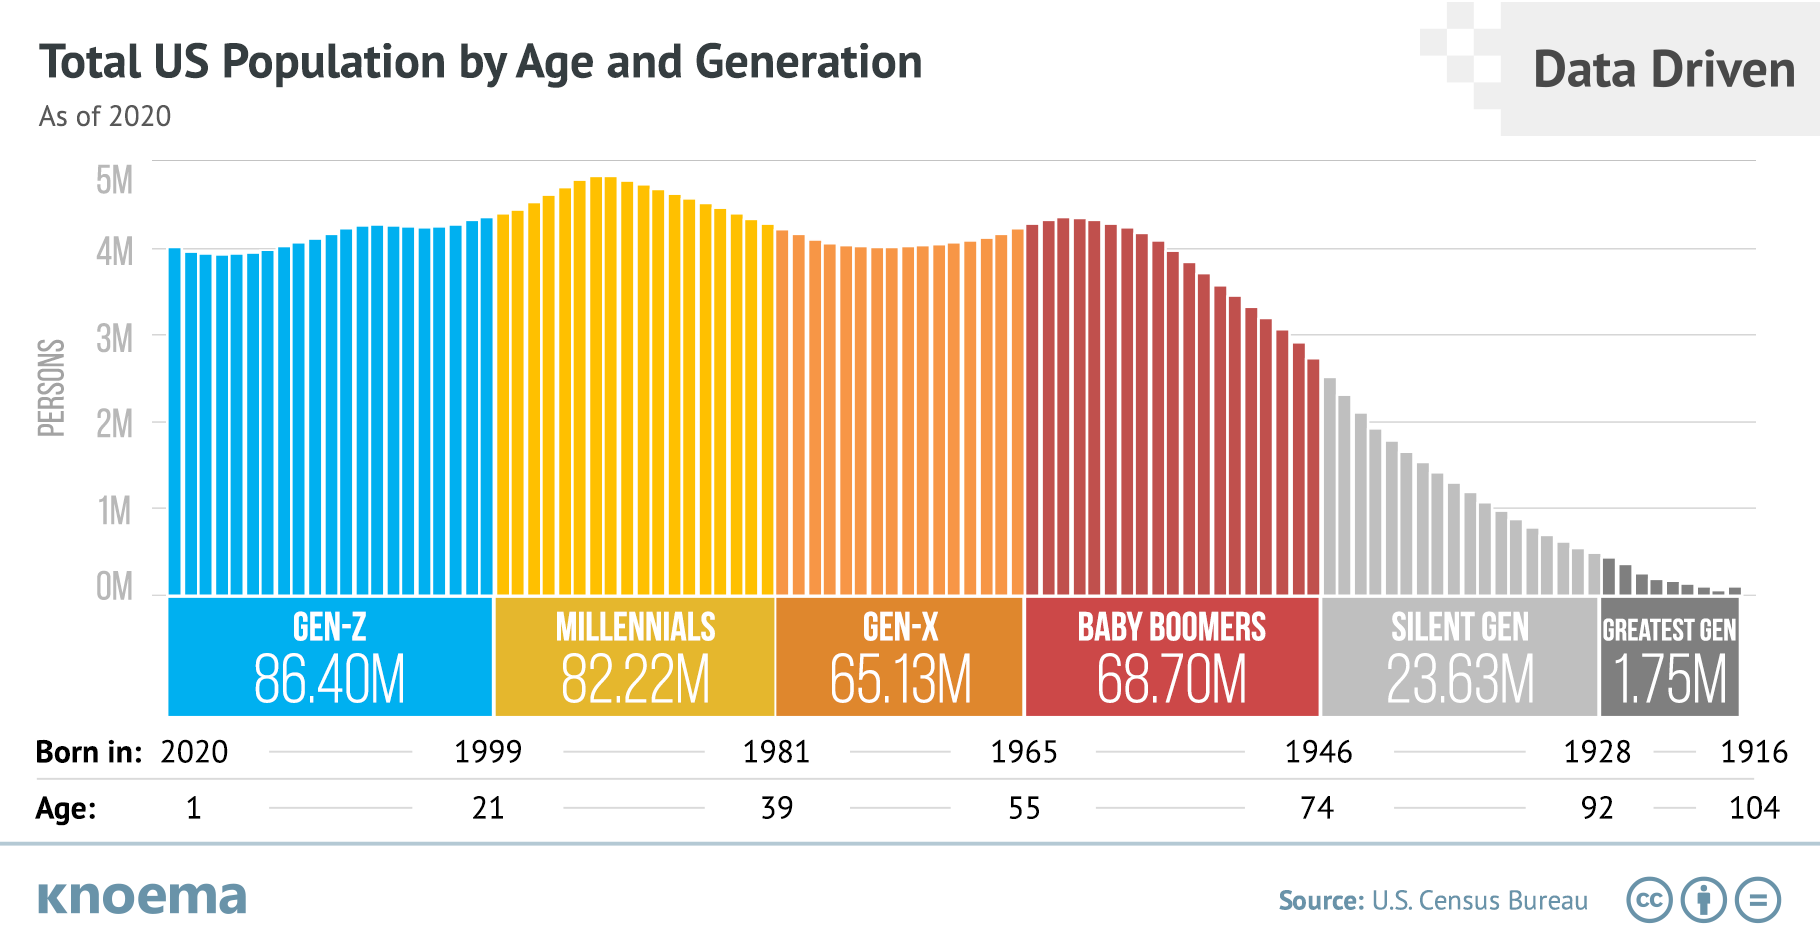 US Population by Age and Generation in 2020